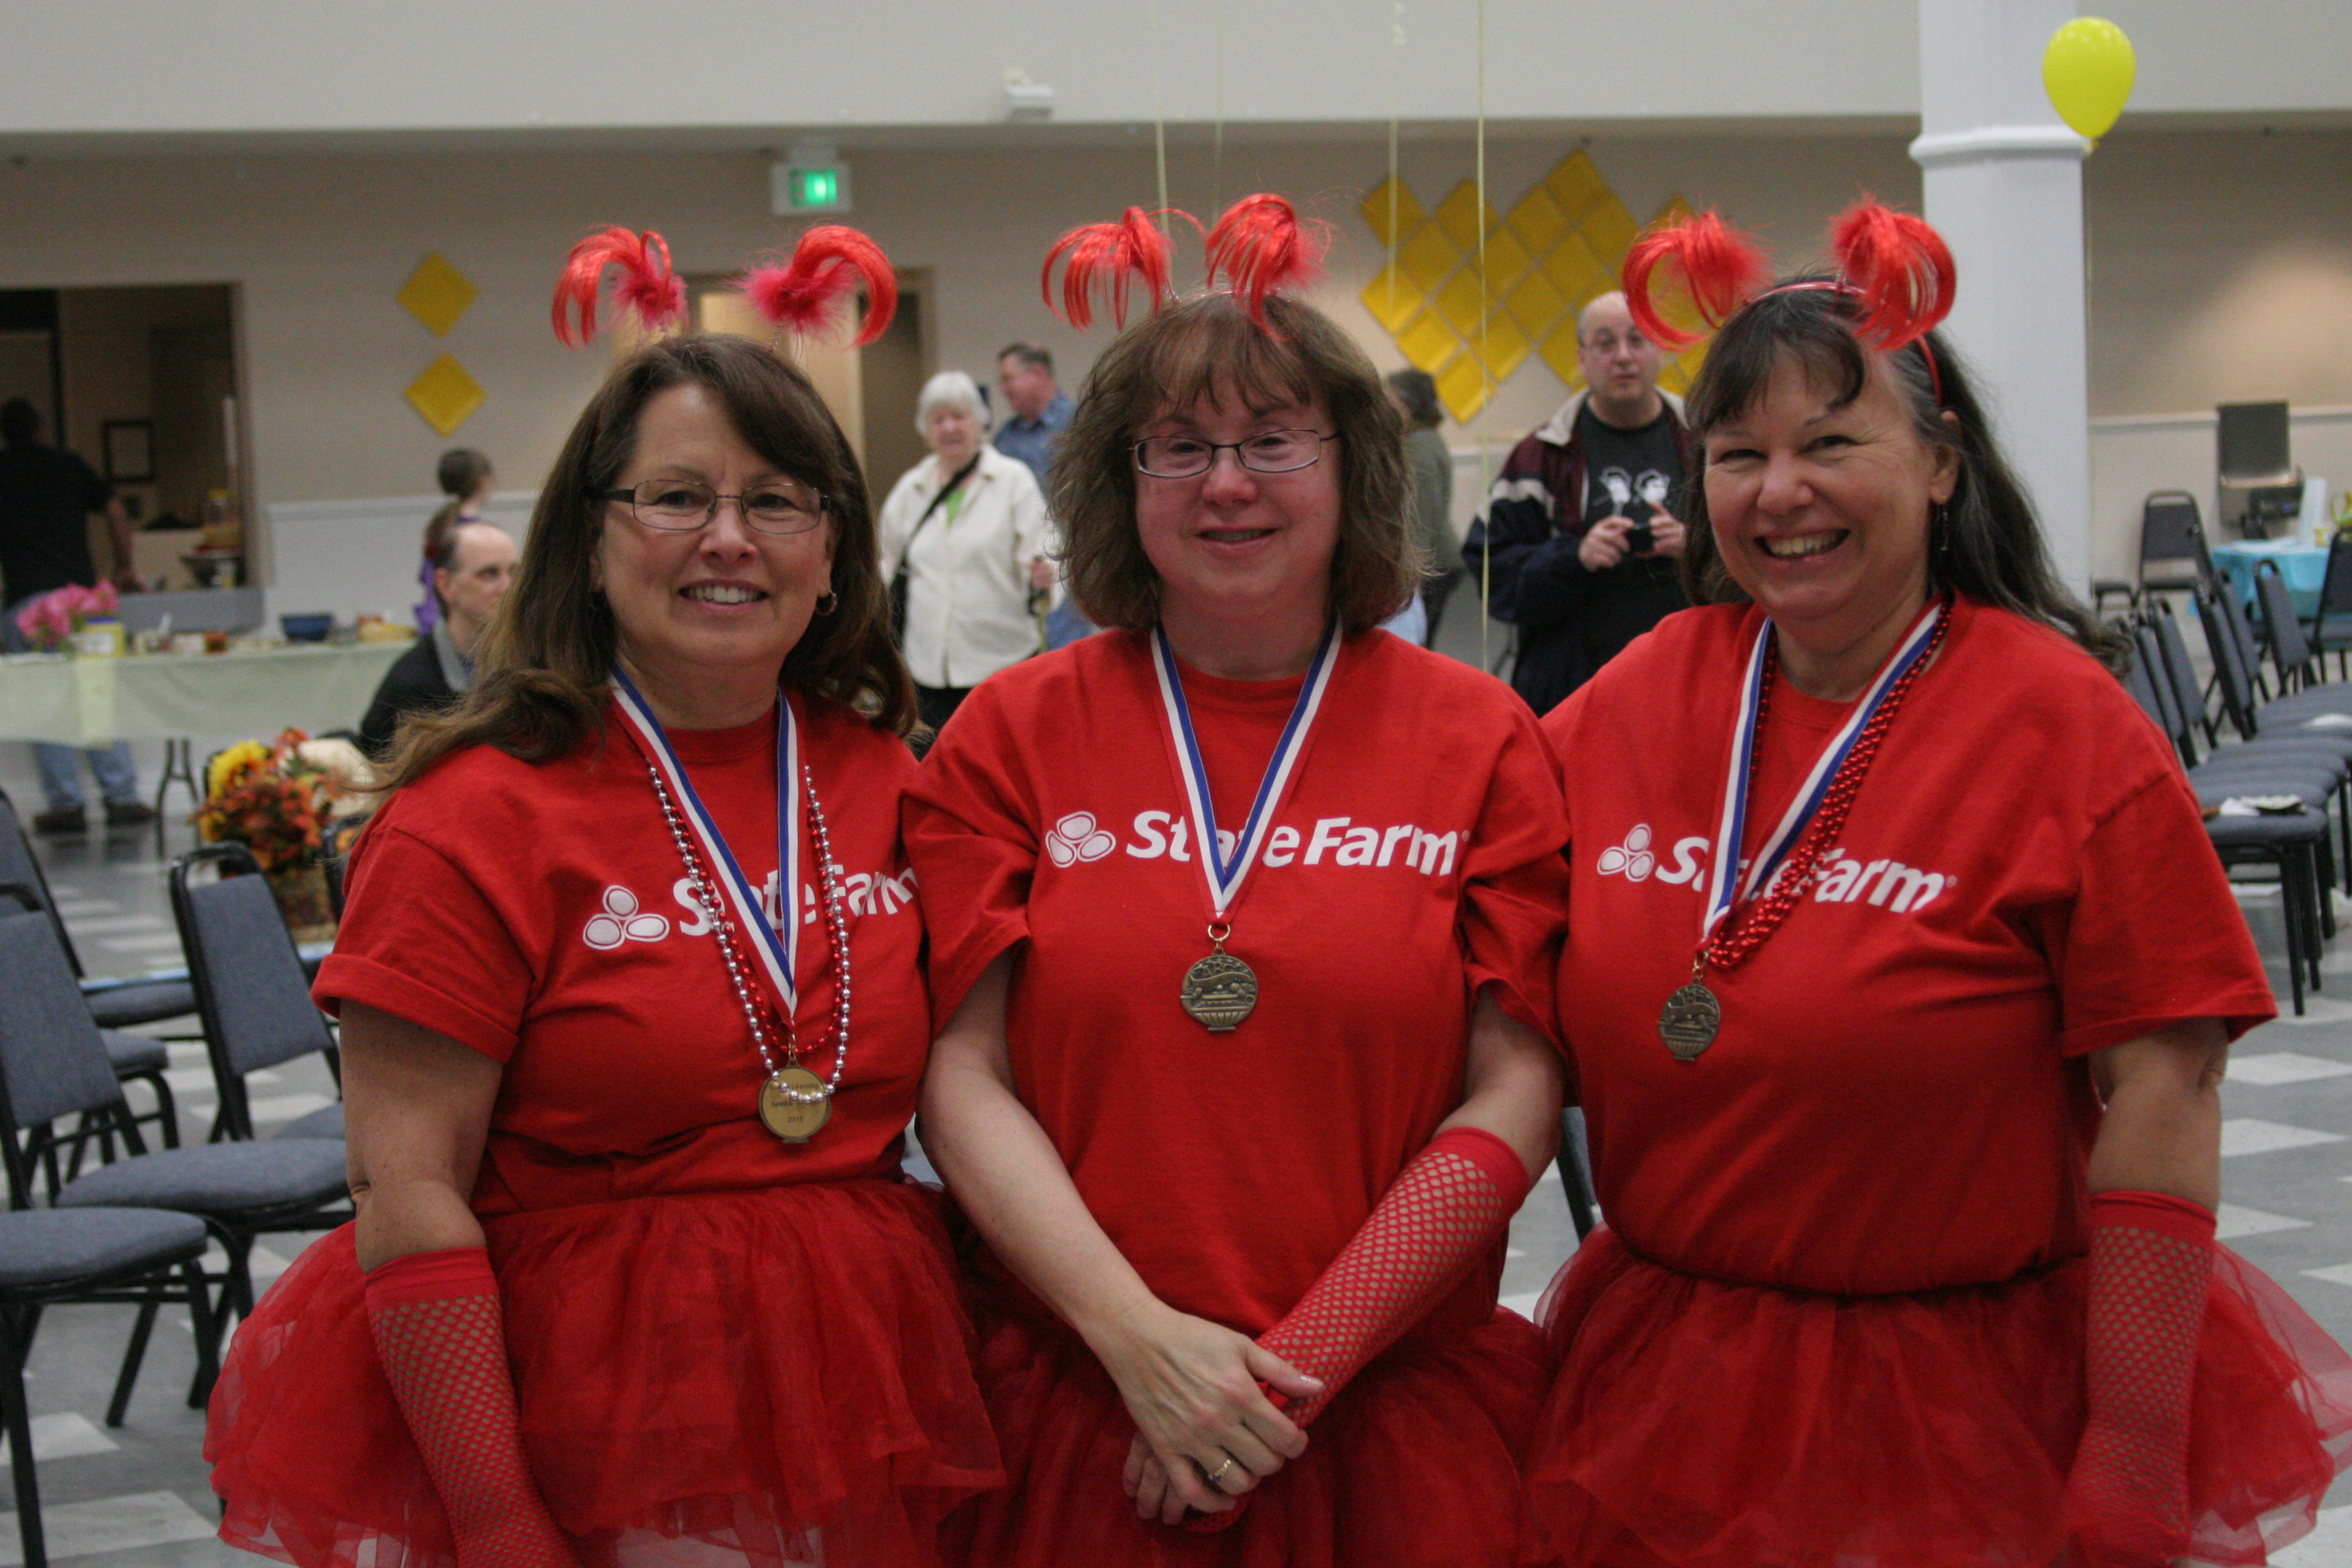 The Good Neighbors, sponsored by Bakala State Farm, in 2nd place!